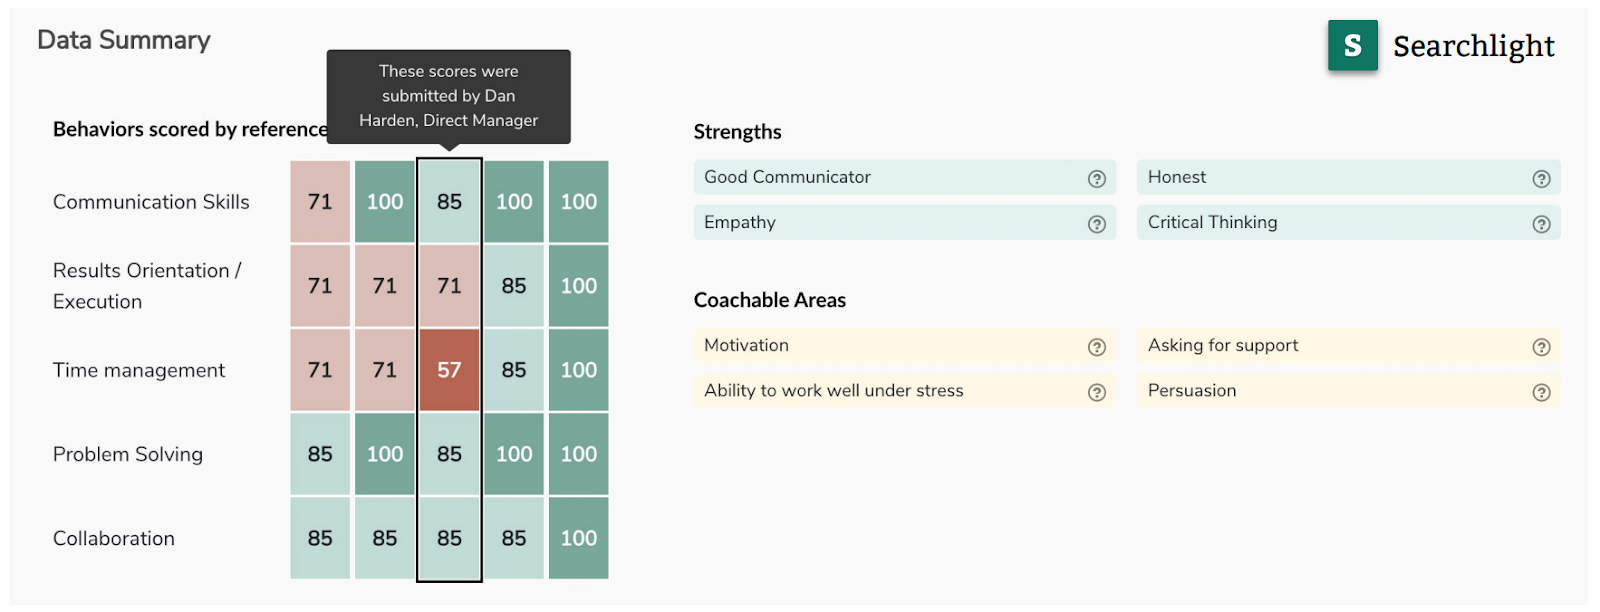 Strengths based recruitment: Searchlight Data Summay